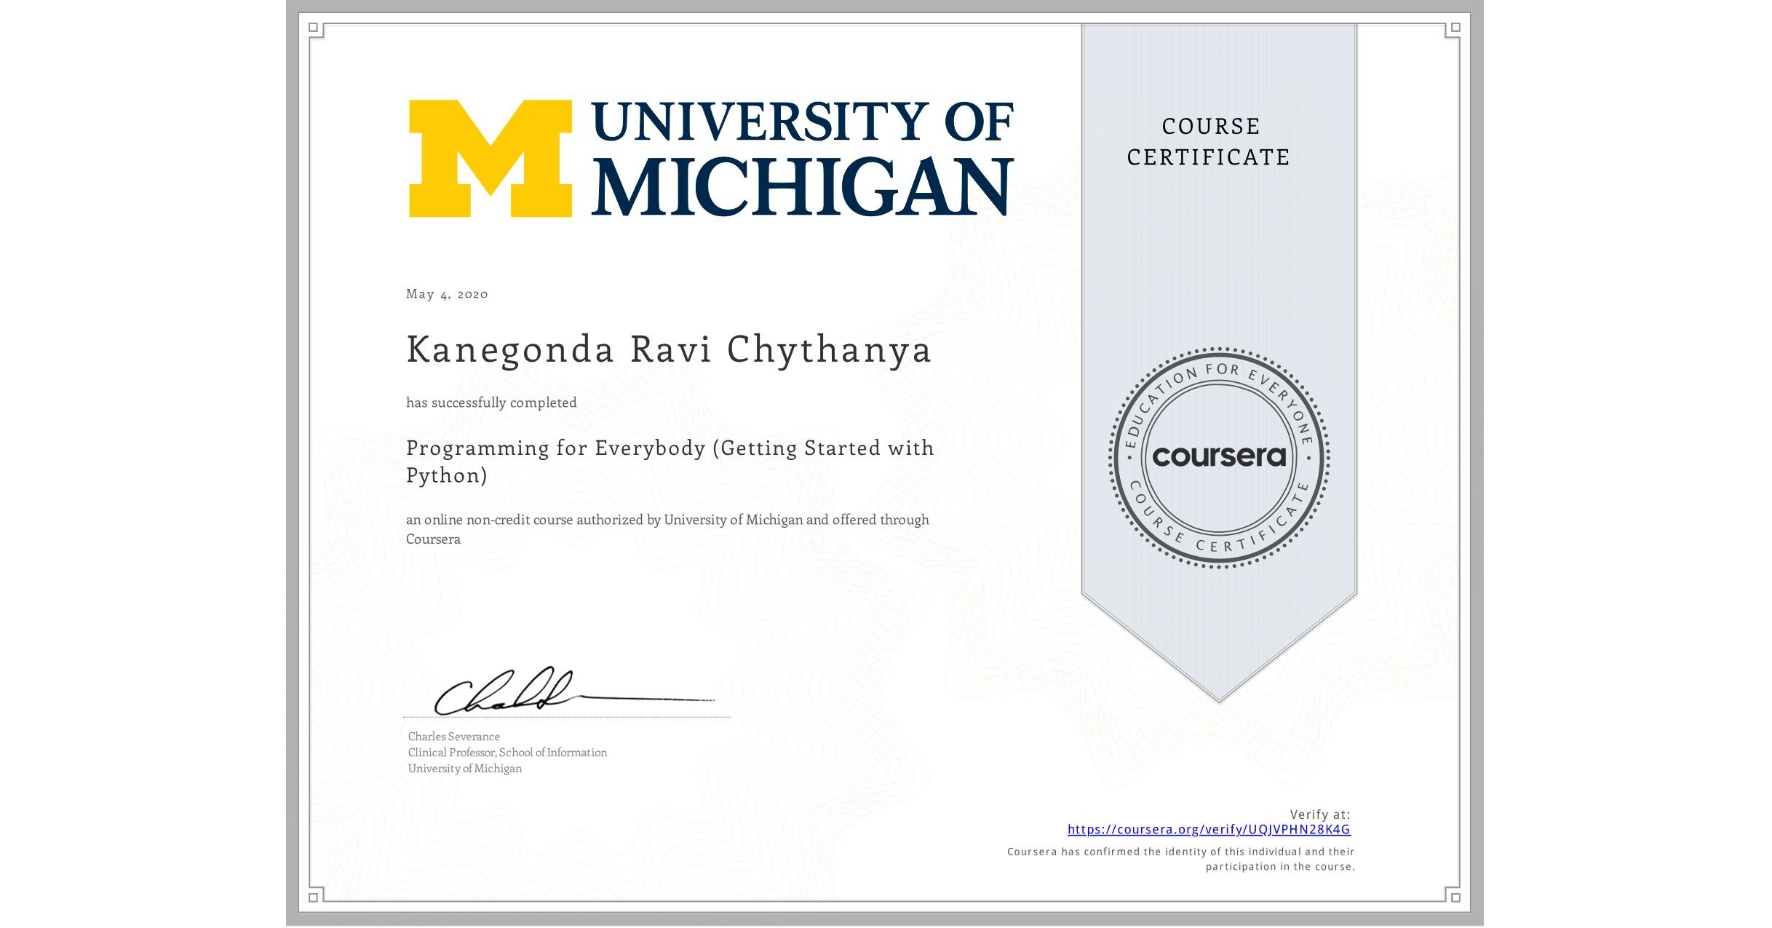 View certificate for Kanegonda Ravi Chythanya, Programming for Everybody (Getting Started with Python), an online non-credit course authorized by University of Michigan and offered through Coursera